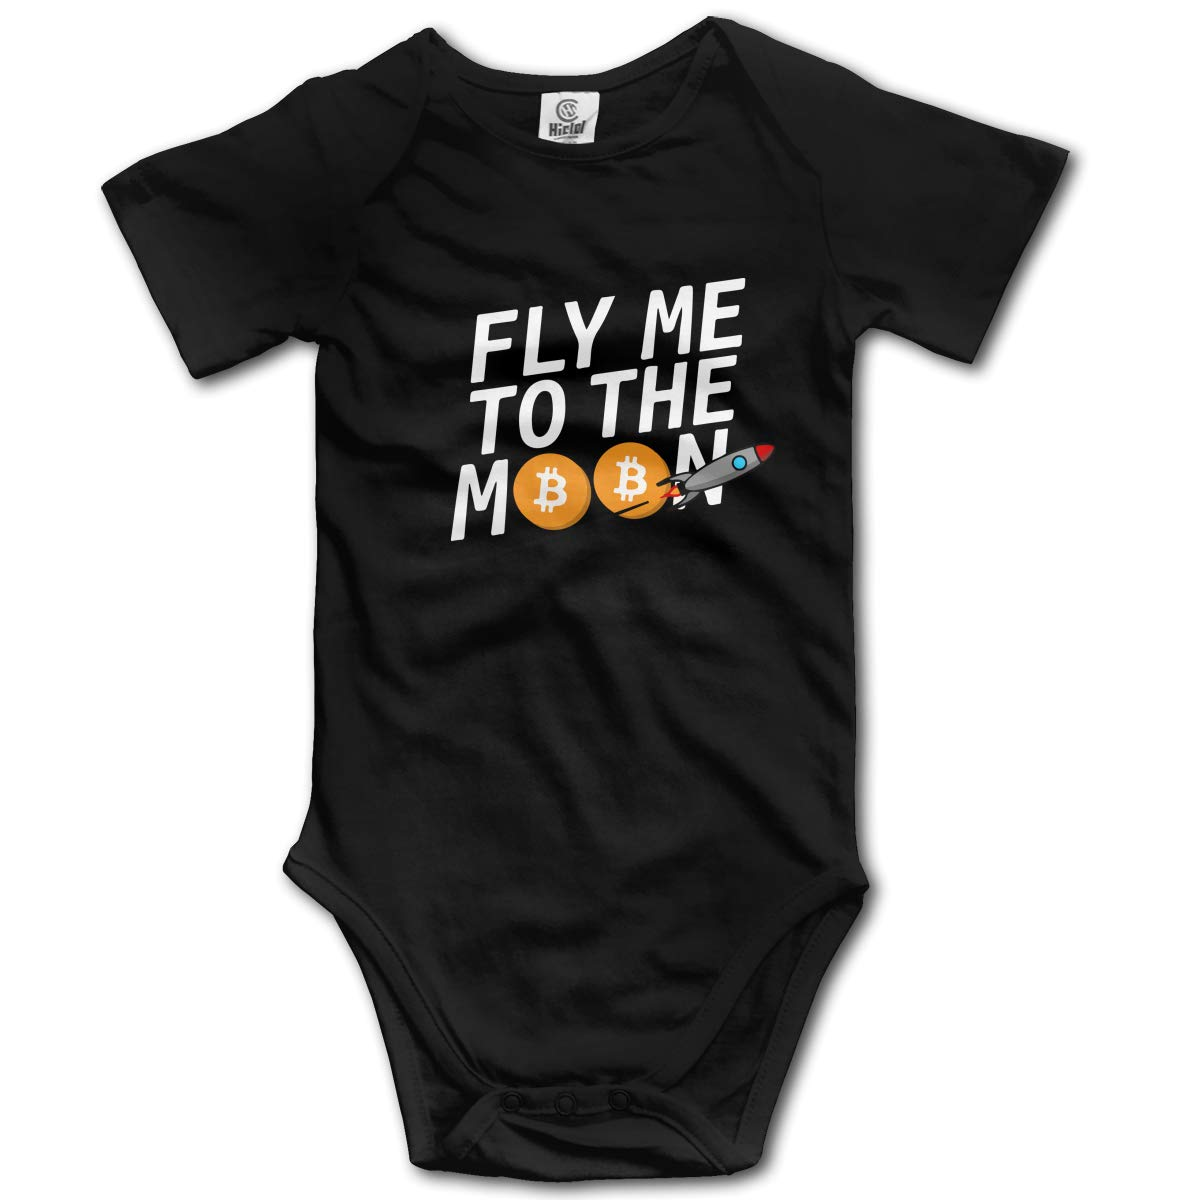 CDHL99 Fly Me to The Moon Unisex Solid Baby Short Sleeve Layette Bodysuit 0-2T